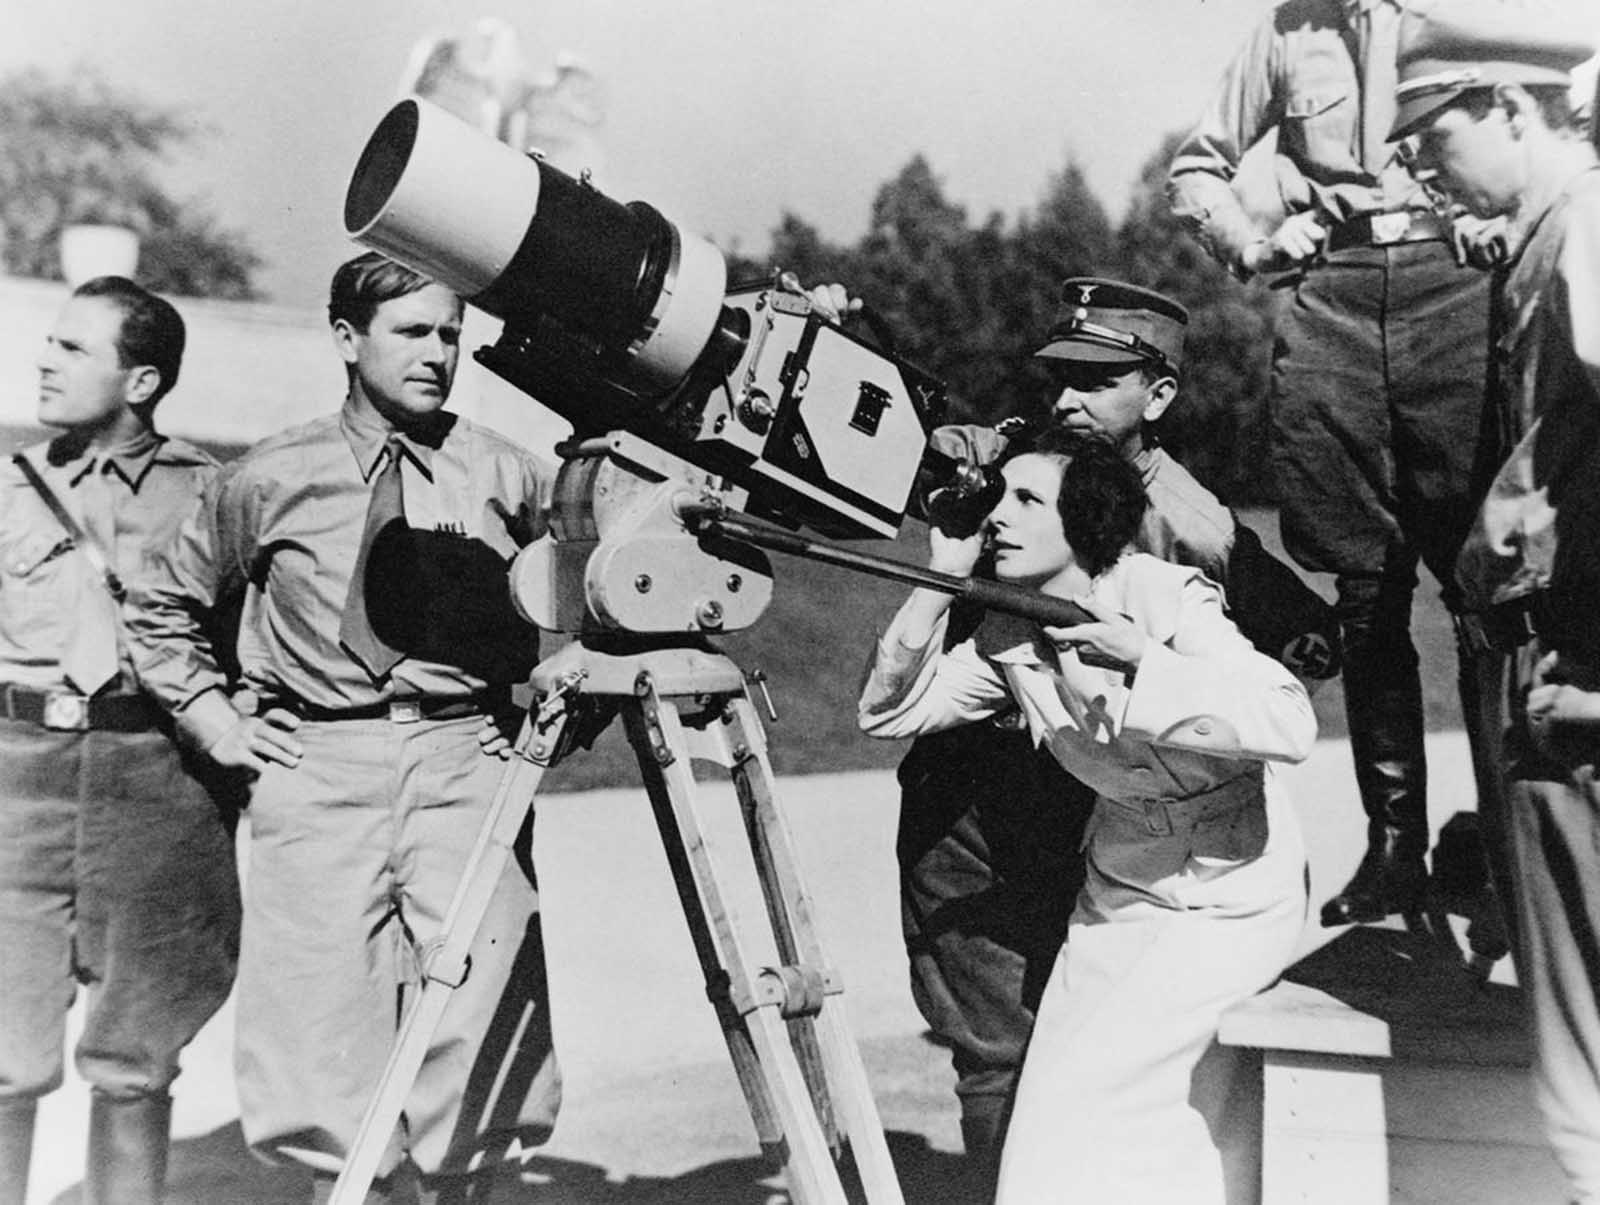 Filmmaker Leni Riefenstahl looks through the lens of a large camera prior to filming the 1934 Nuremberg Rally in Germany. The footage would be composed into the 1935 film